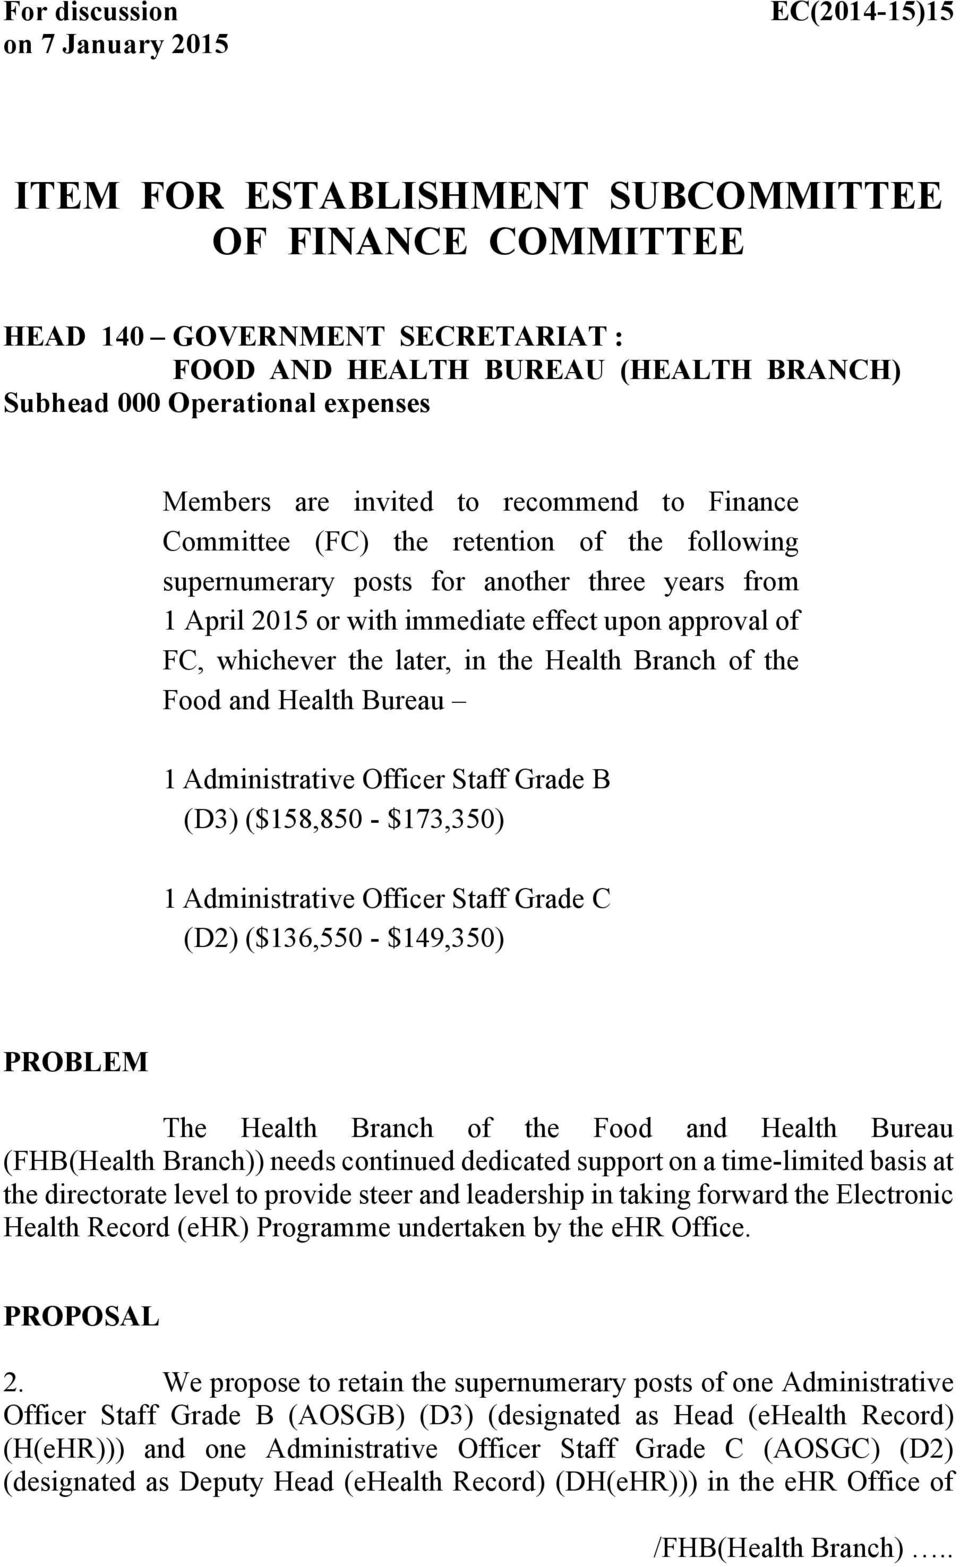 upon approval of FC, whichever the later, in the Health Branch of the Food and Health Bureau 1 Administrative Officer Staff Grade B (D3) ($158,850 - $173,350) 1 Administrative Officer Staff Grade C